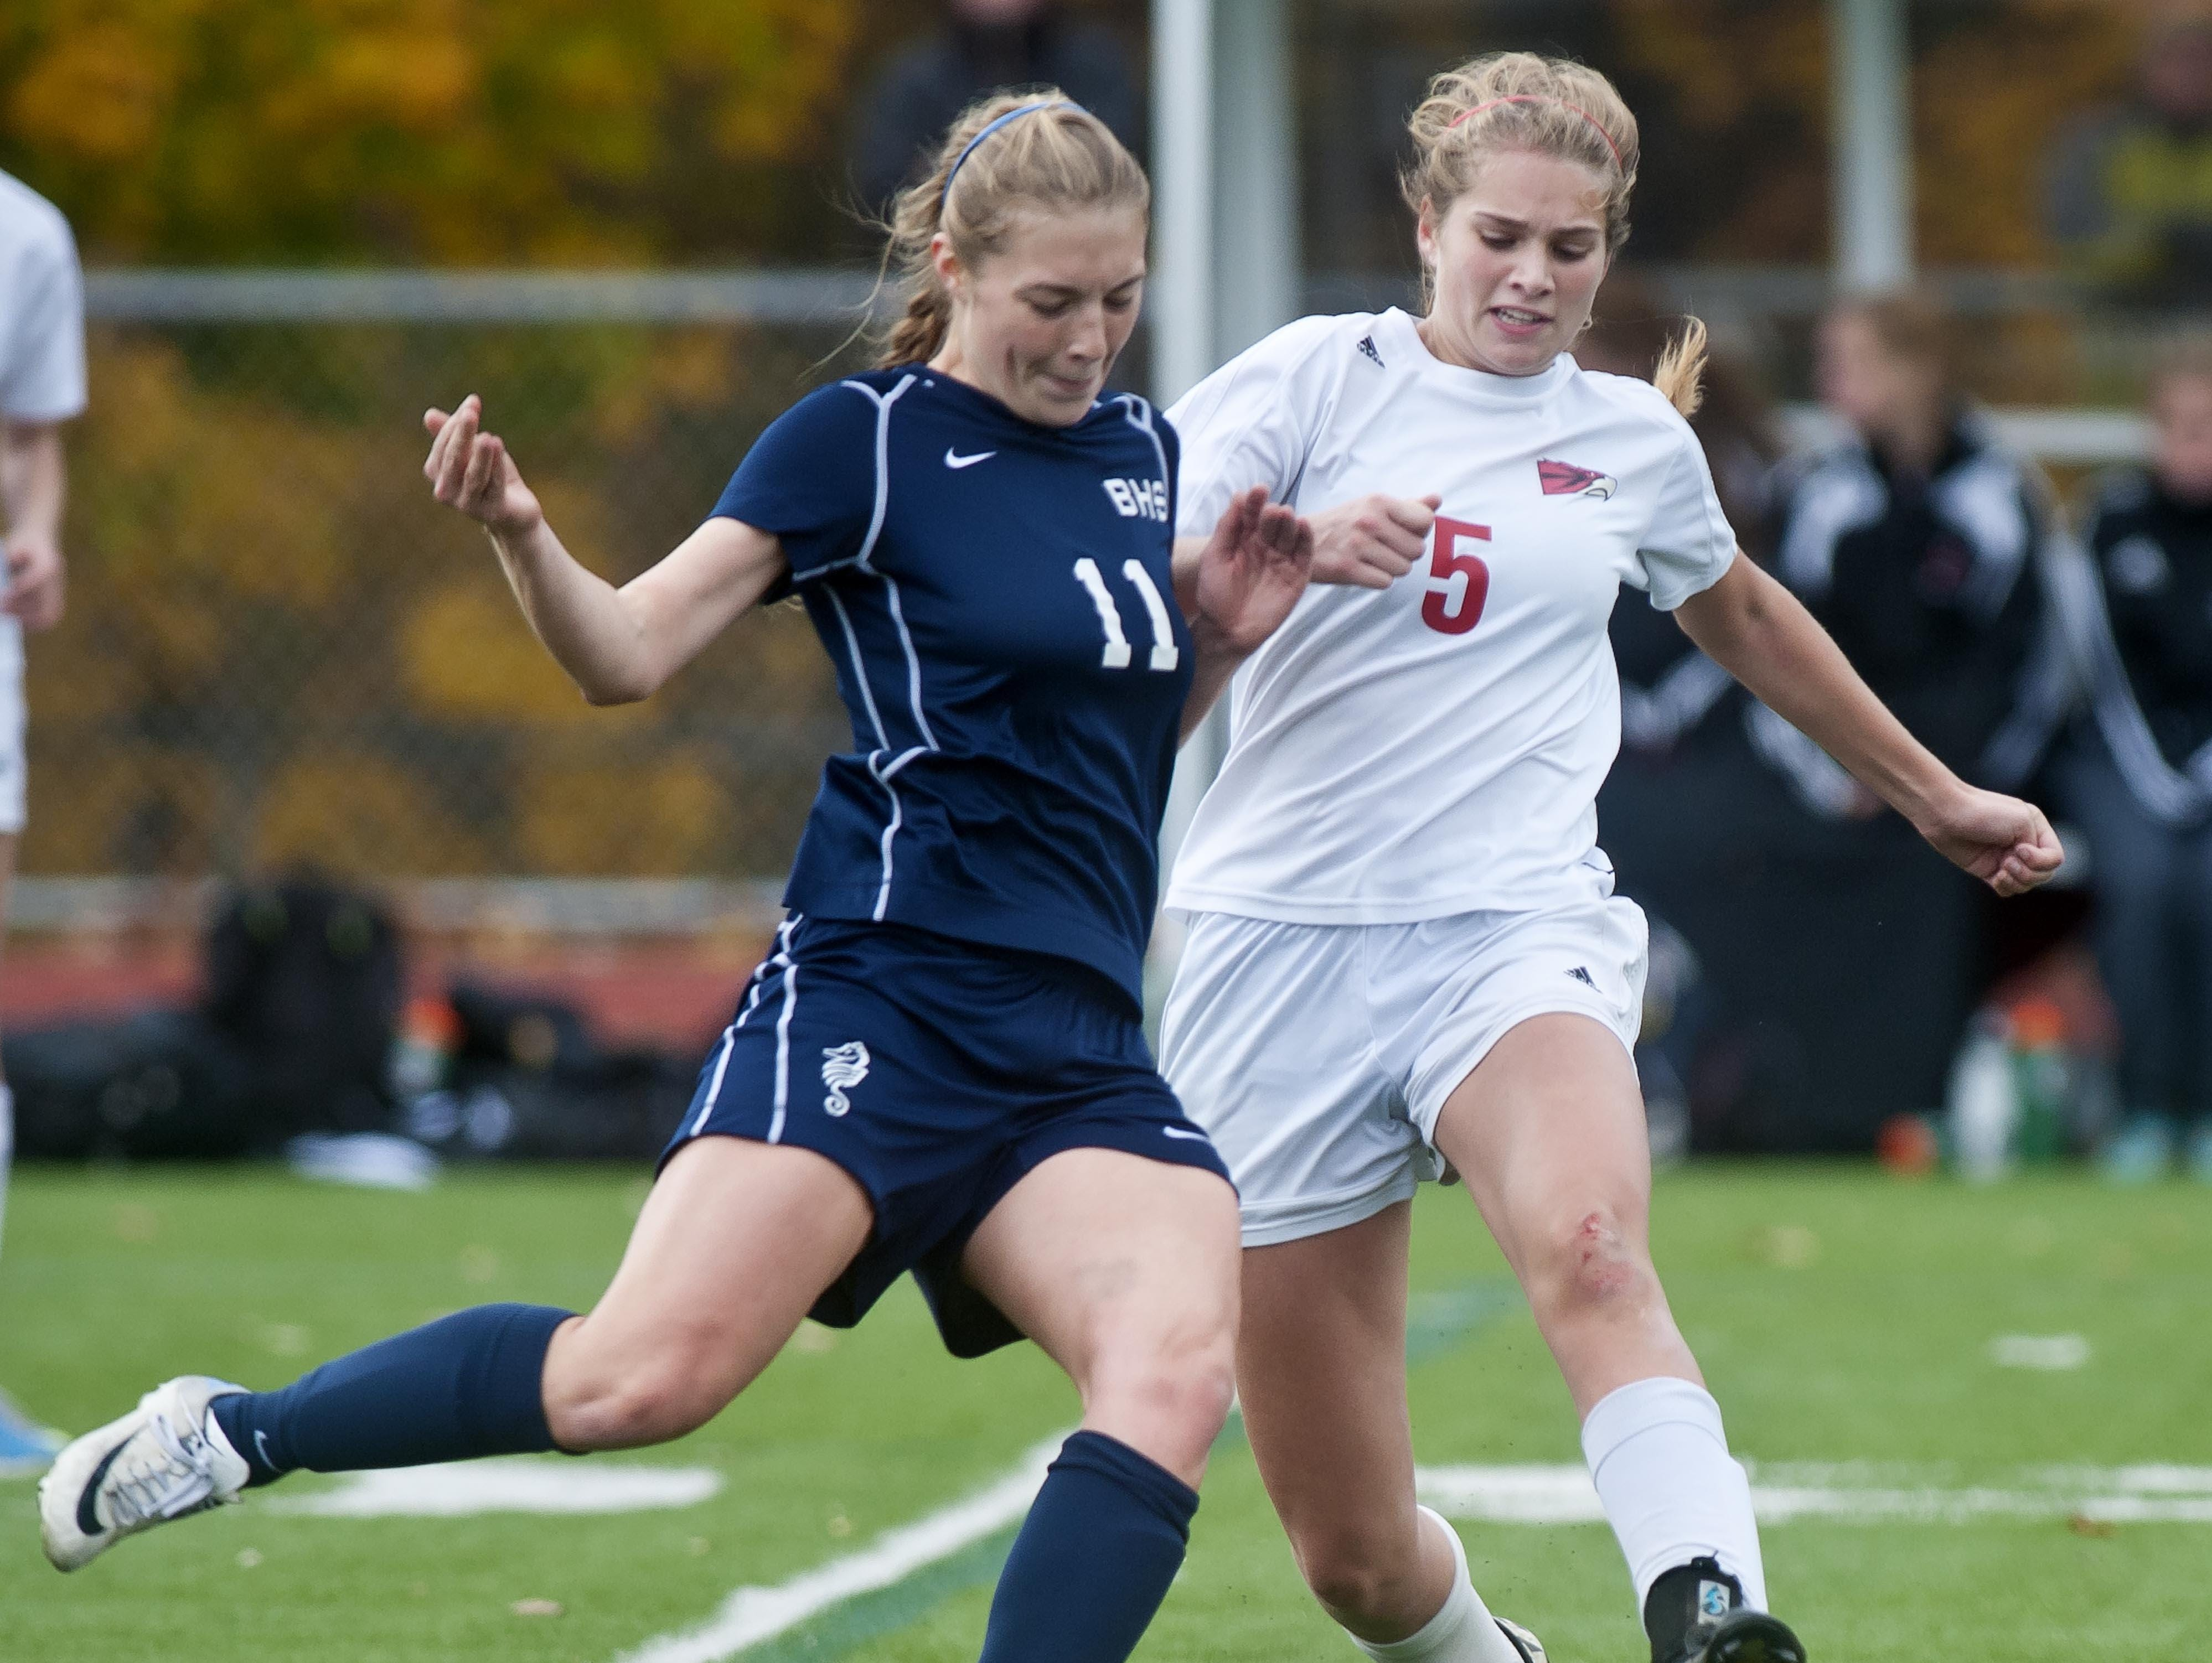 CVU's Paige Dubrul (right) and Burlington's Callie Flynn try to get a foot on the ball during the Division I high school girls state championship in November.